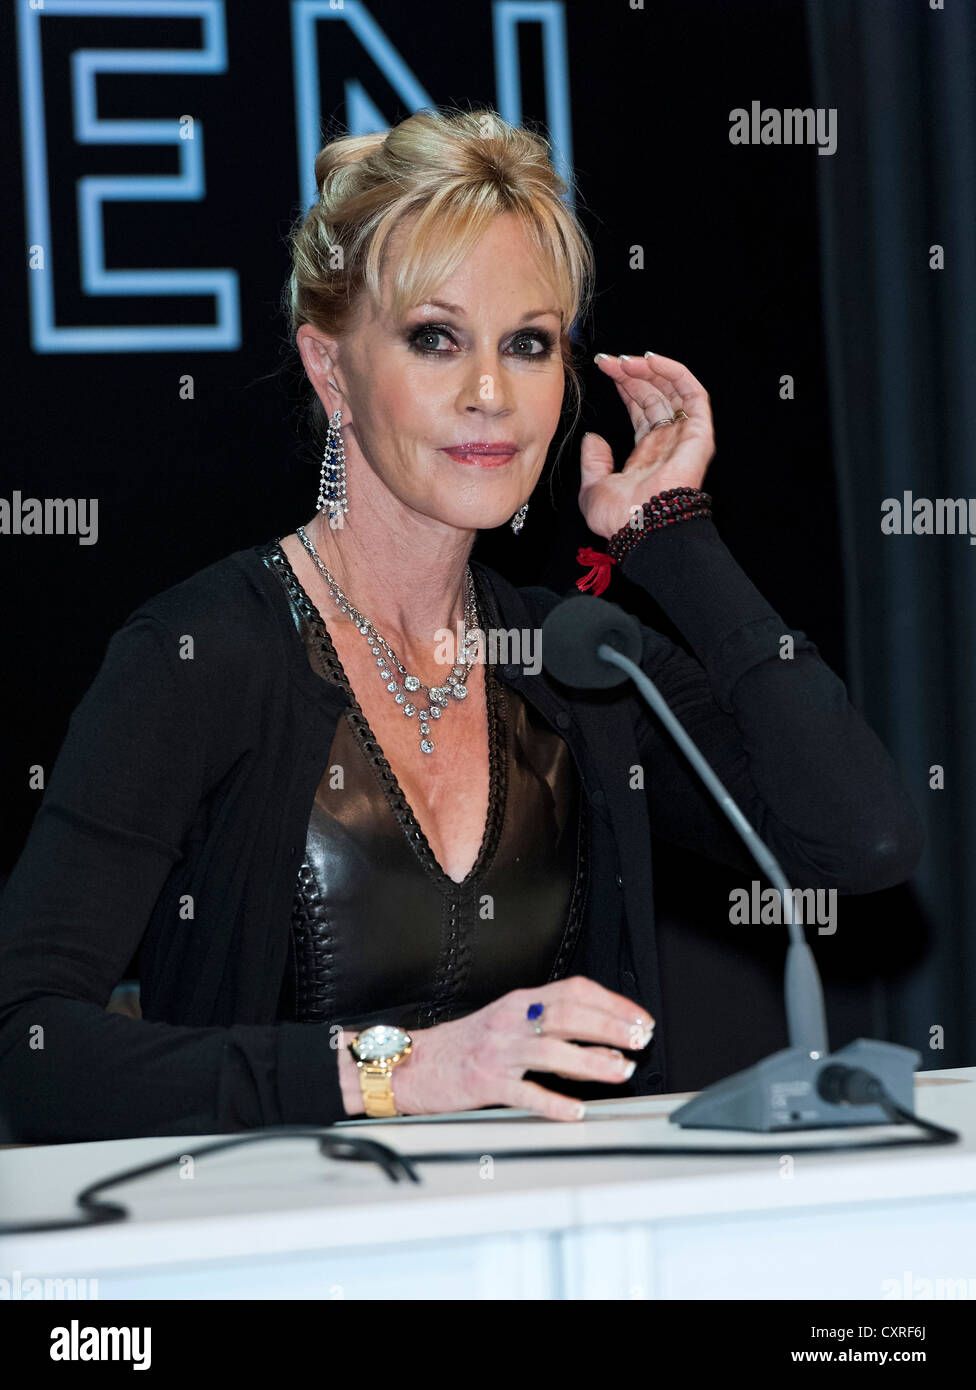 Actress Melanie Griffith at the Filmfest in Munich, Bavaria, Germany, Europe - Stock Image